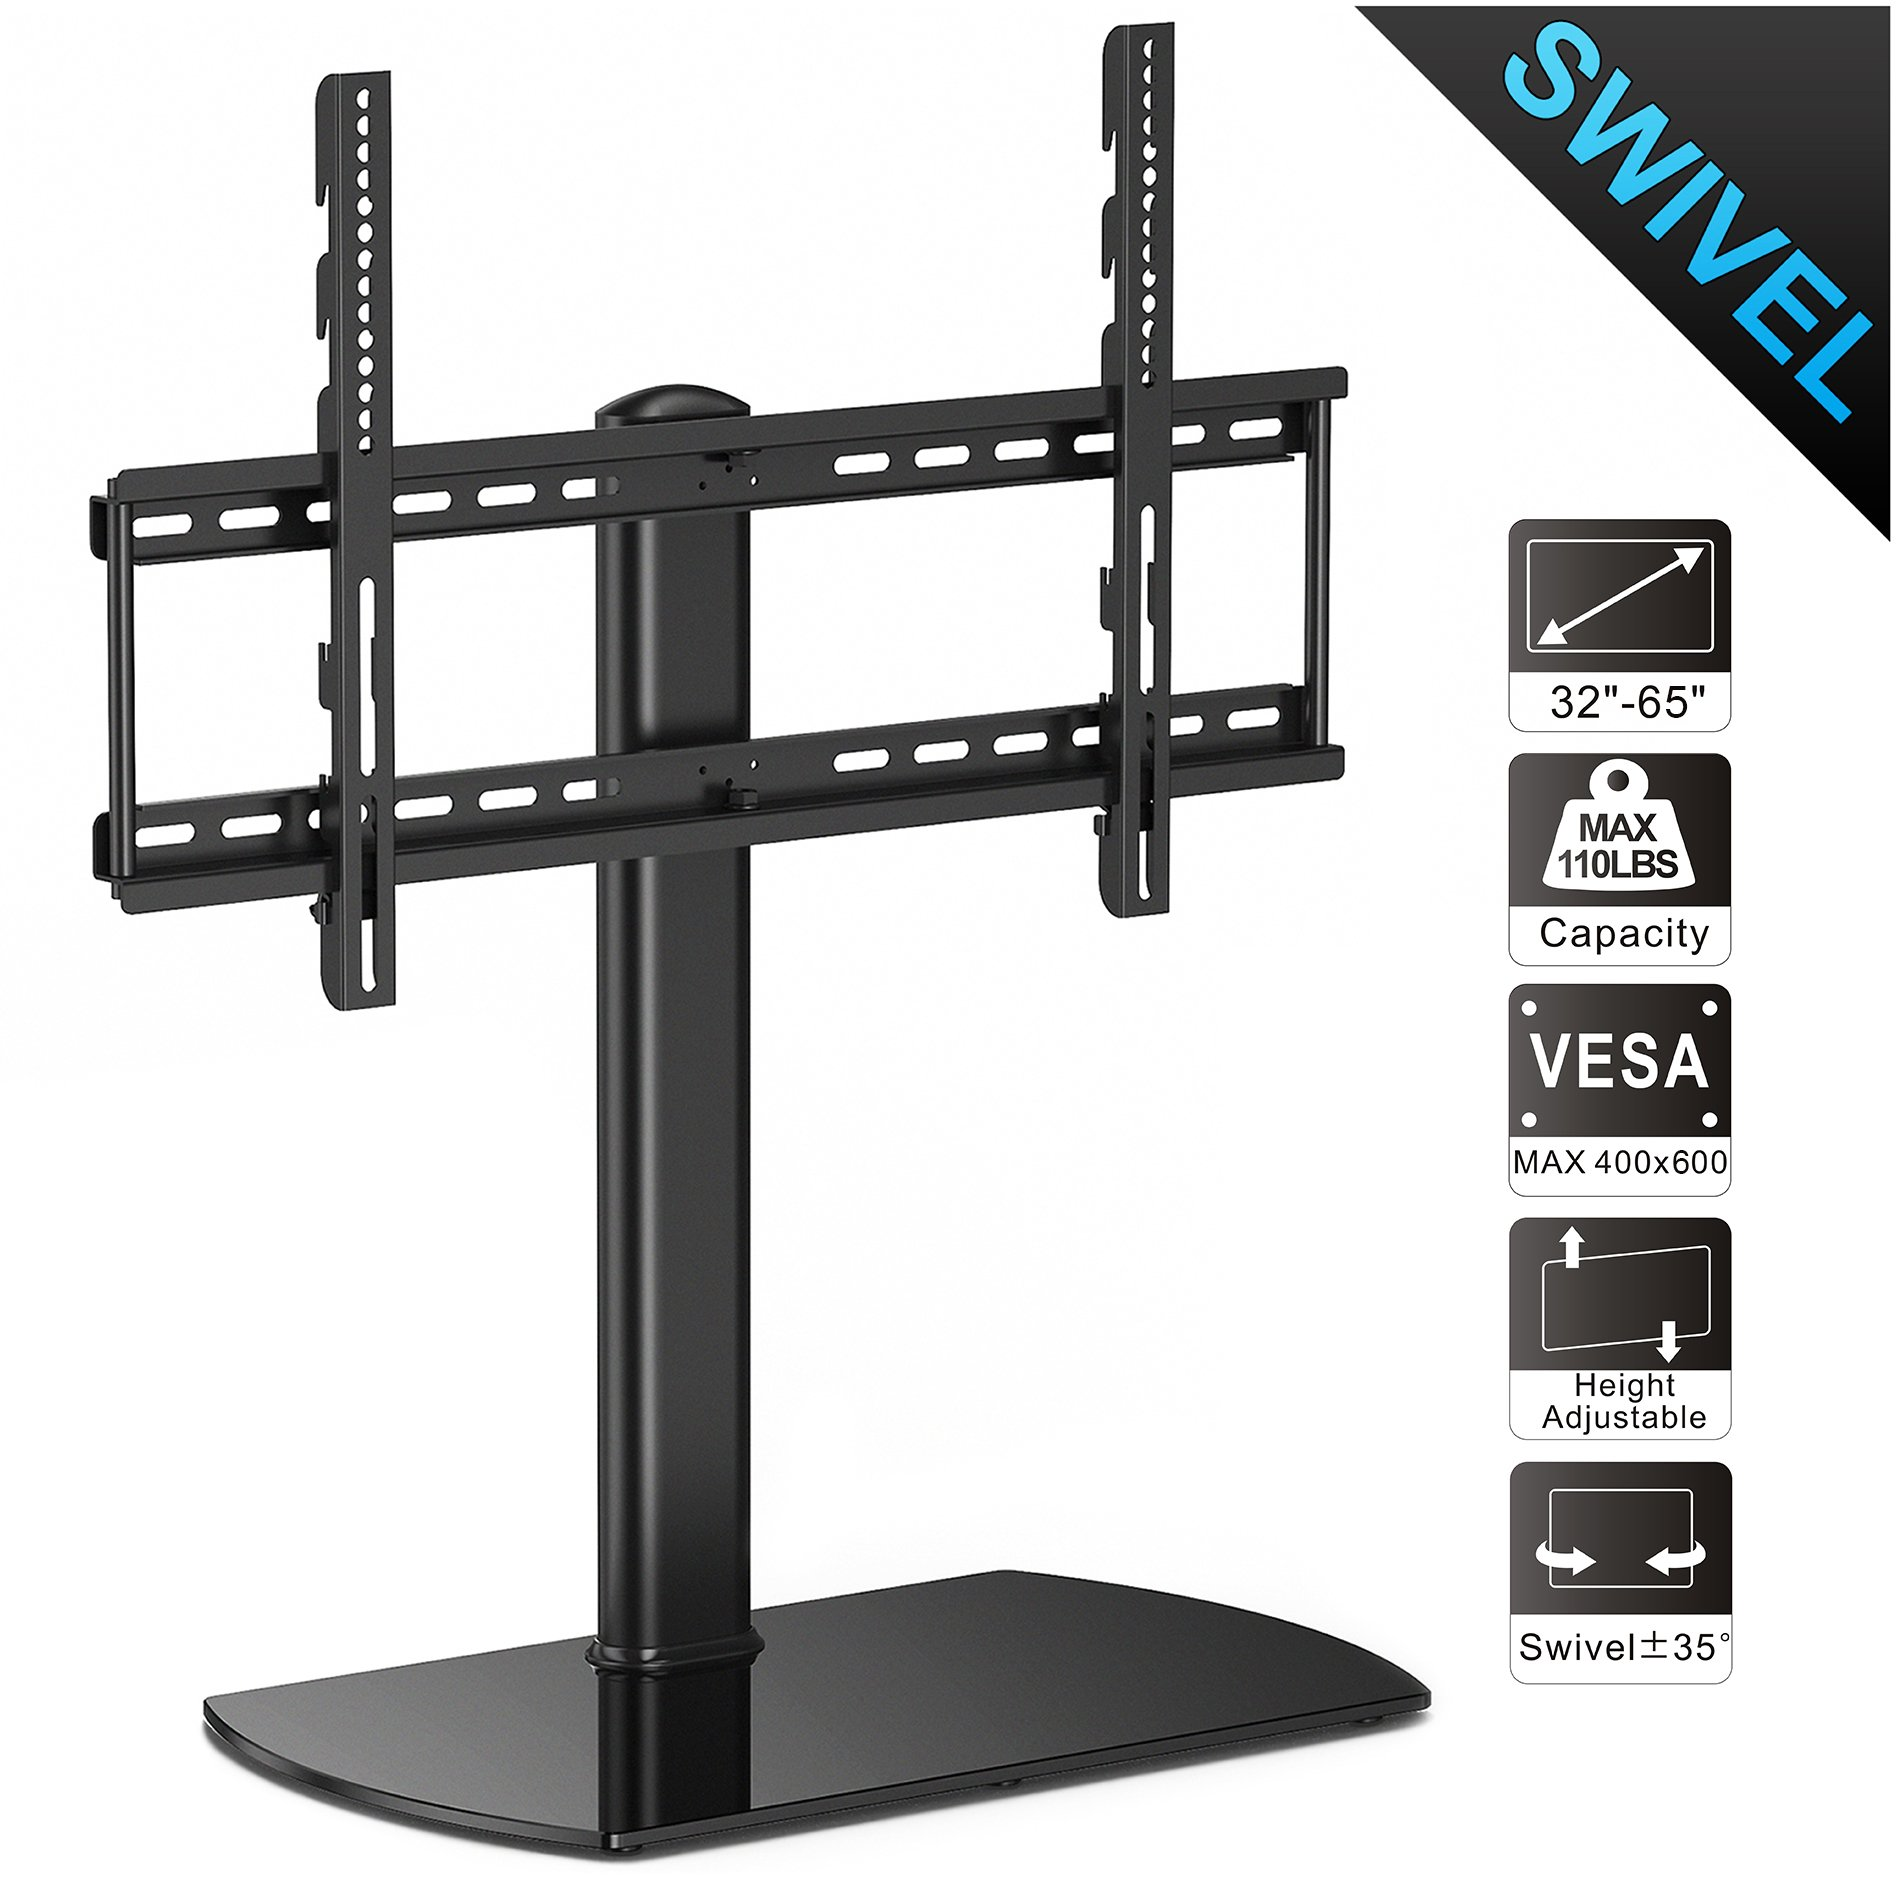 Fitueyes Universal TV Stand /Base Swivel Tabletop TV Stand with Mount for 32 to 65 inch Flat screen Tvs/xbox One/tv Component /Vizio Tv TT107002GB